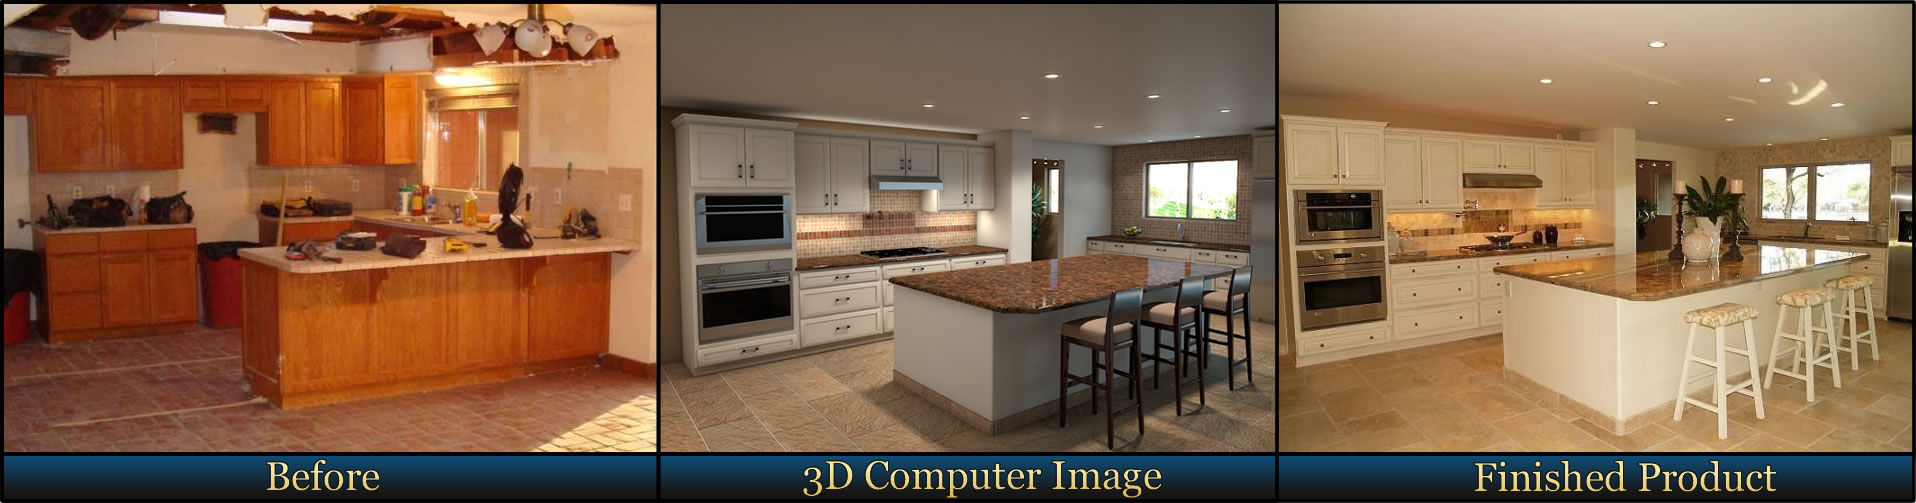 Kitchen Remodel, Before, 3d Digital Virtual View, and After Project Completion